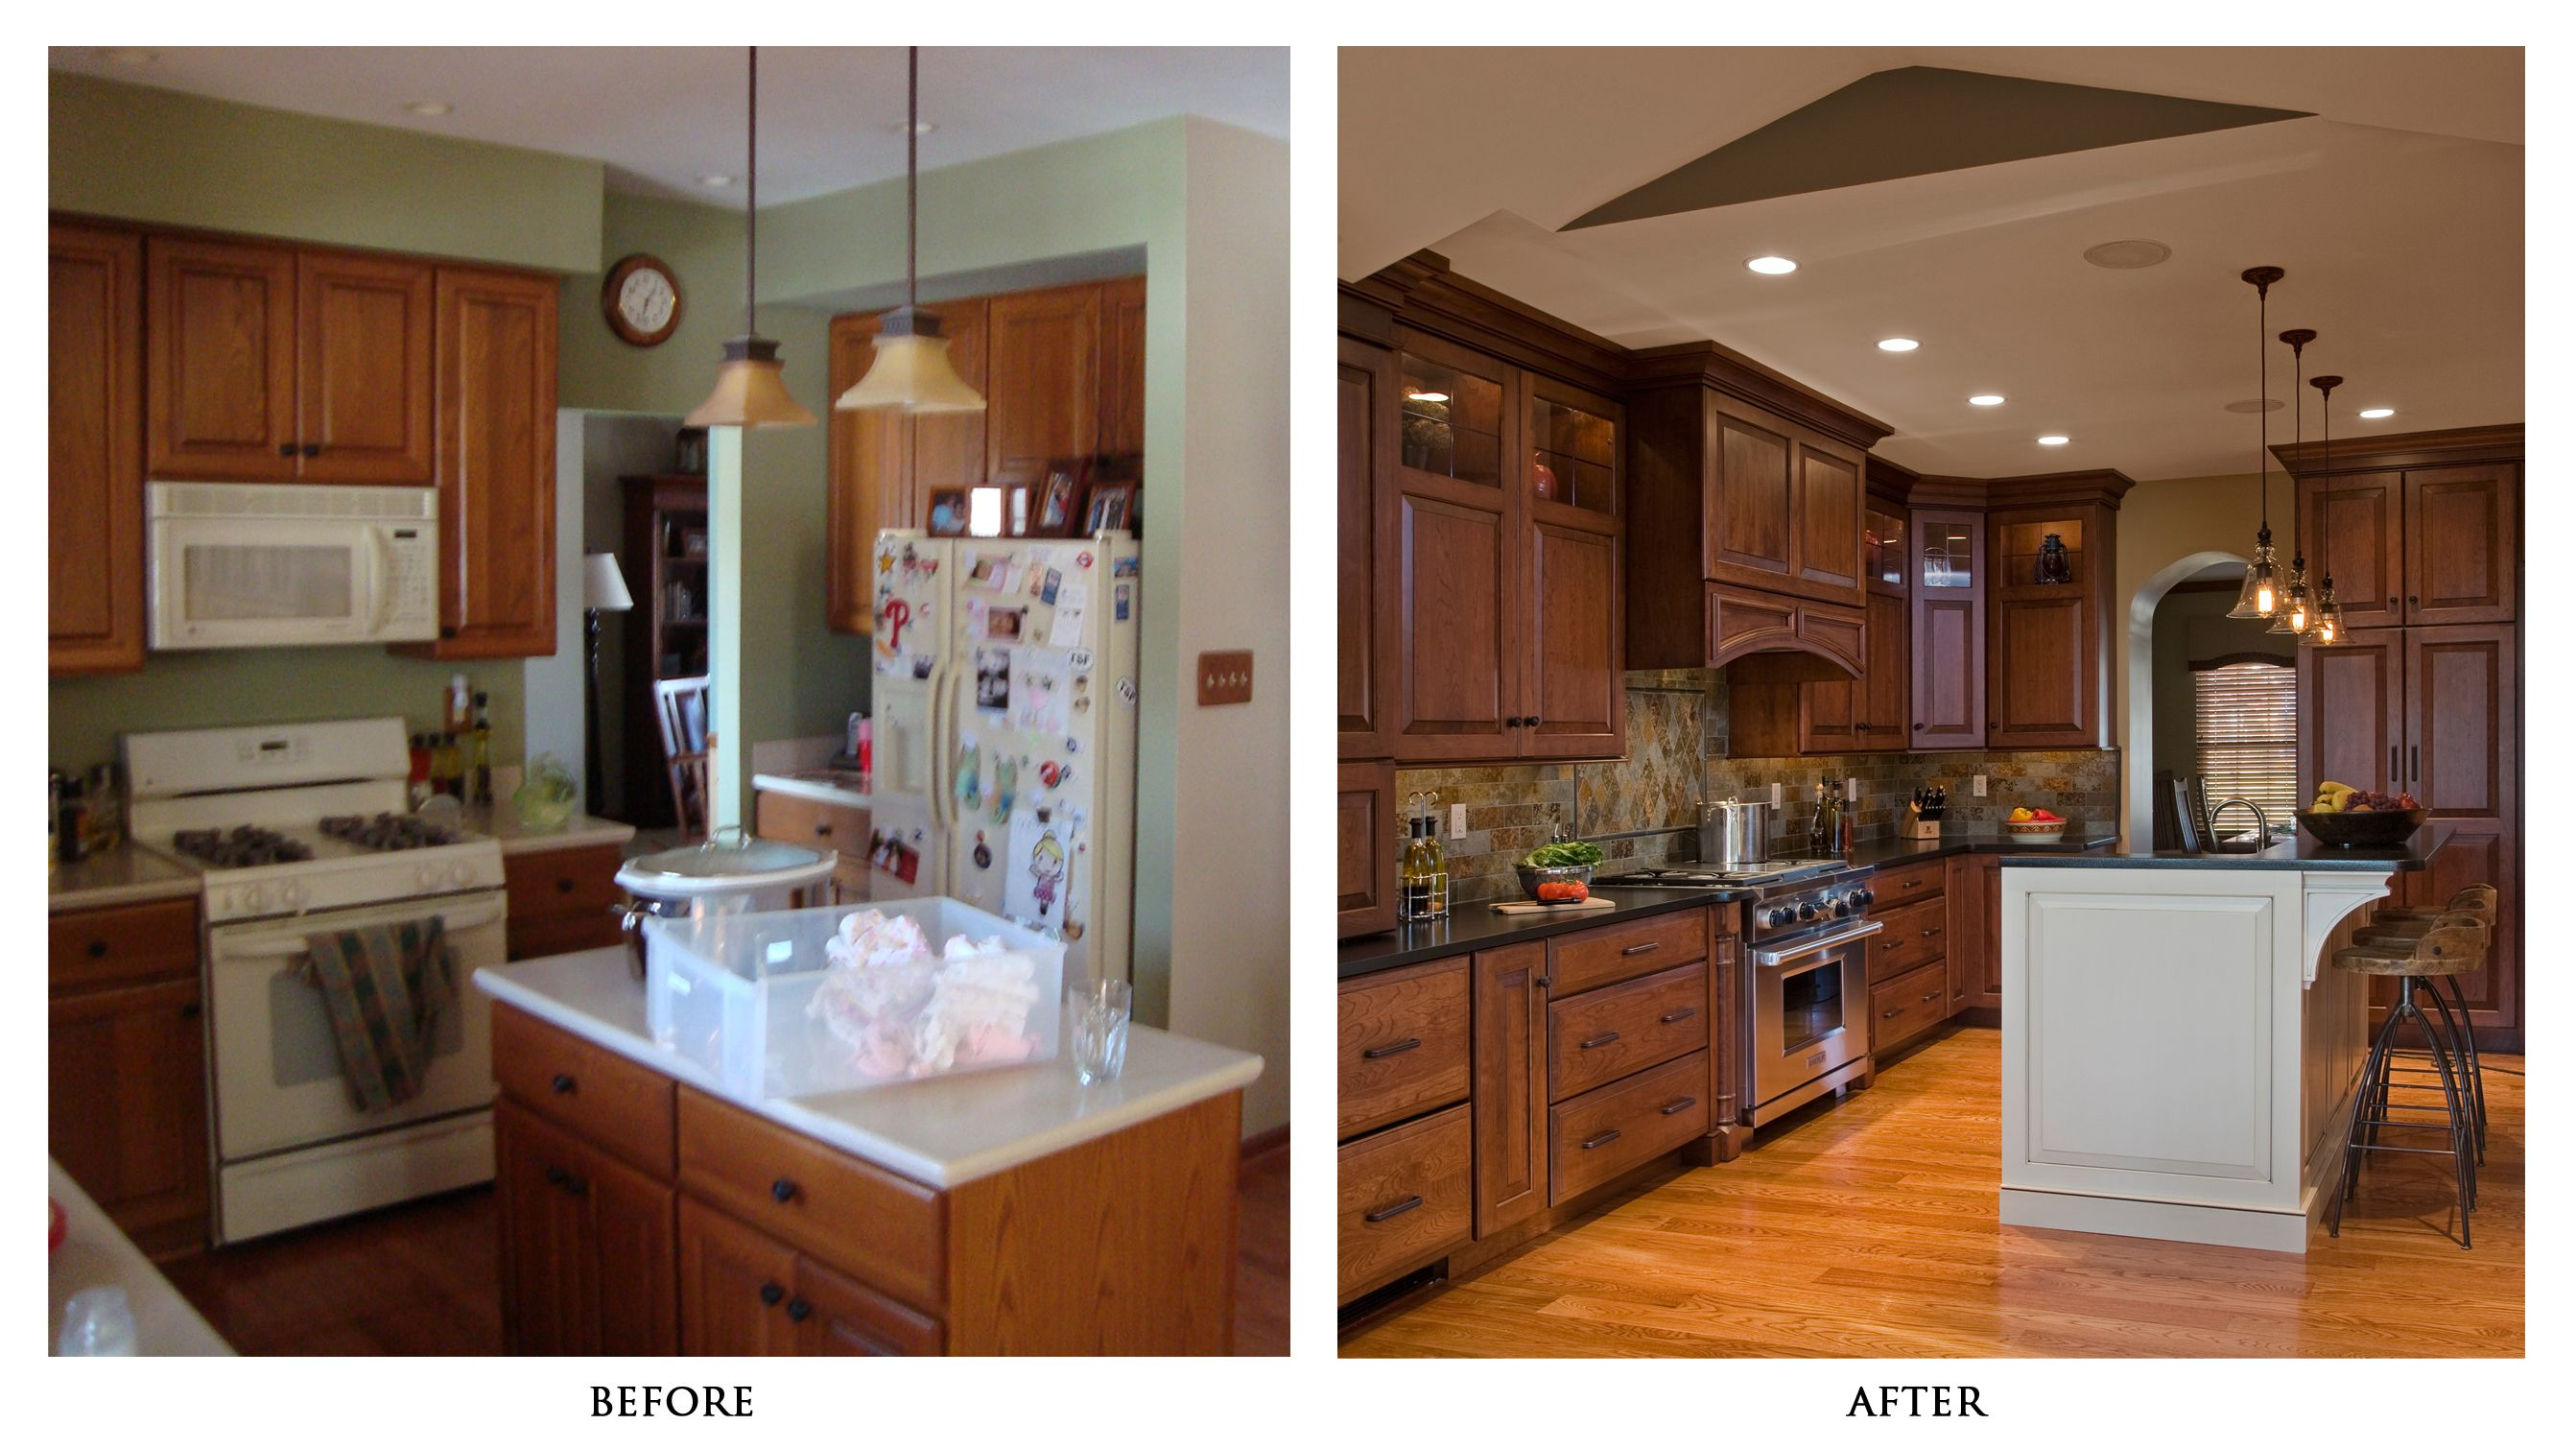 Kitchens Renovations Kitchen Remodel Before And After Google Search 1960s Remodel